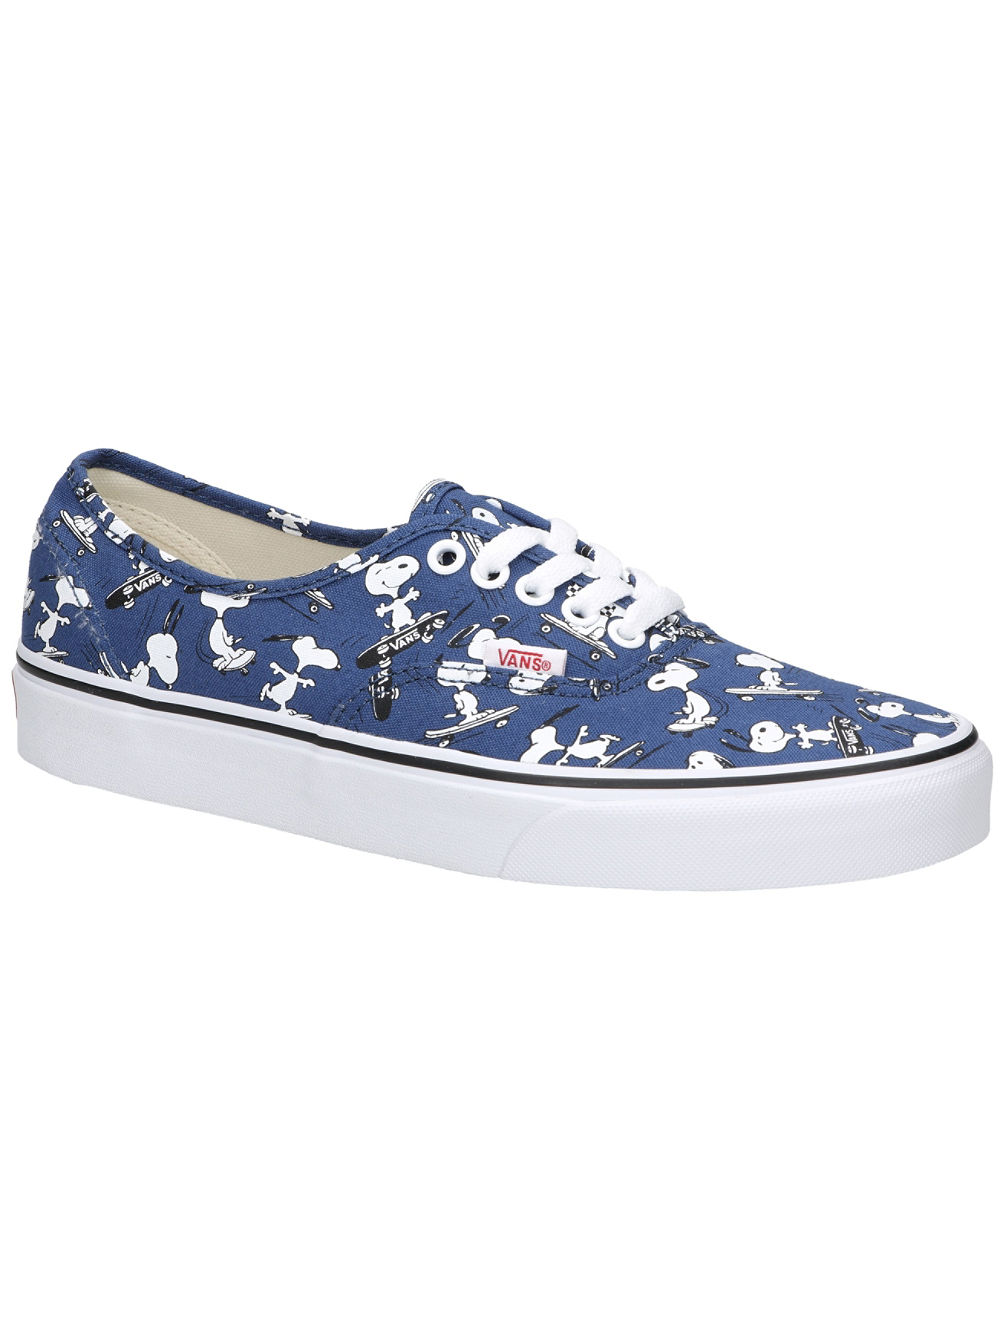 Peanuts Authentic Sneakers